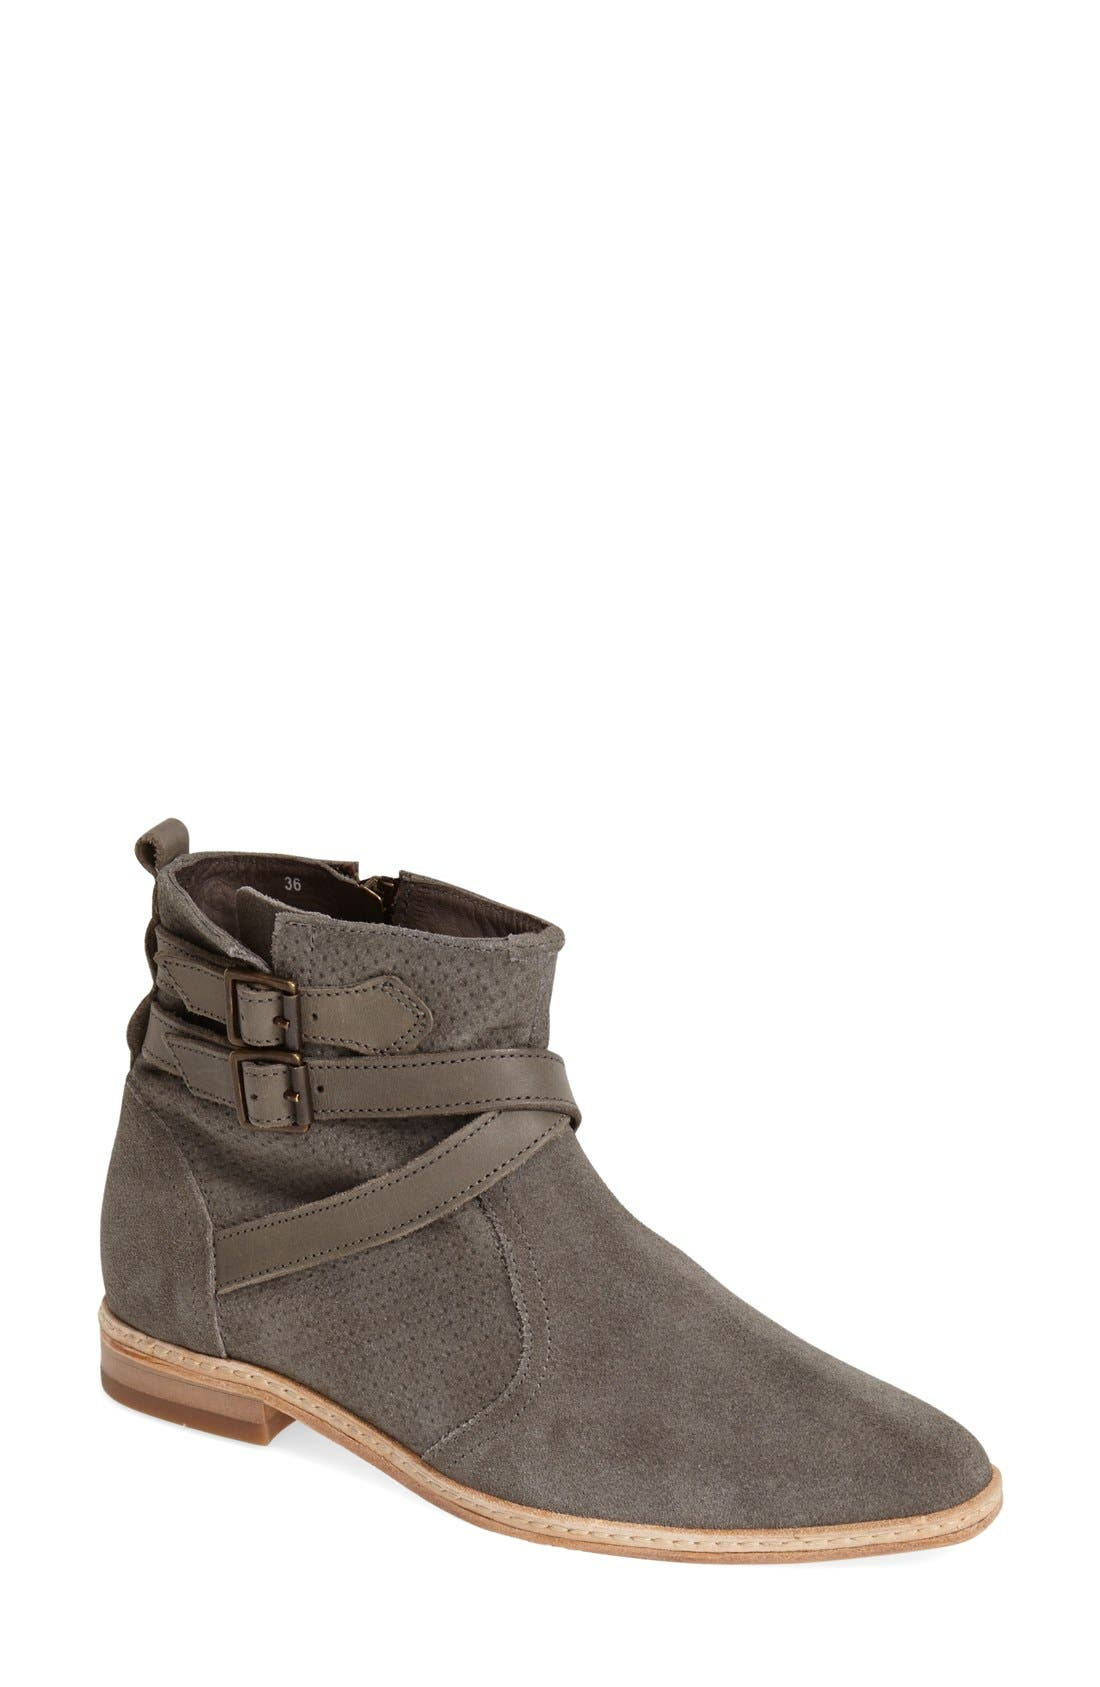 'Tab' Suede Chelsea Bootie,                             Main thumbnail 1, color,